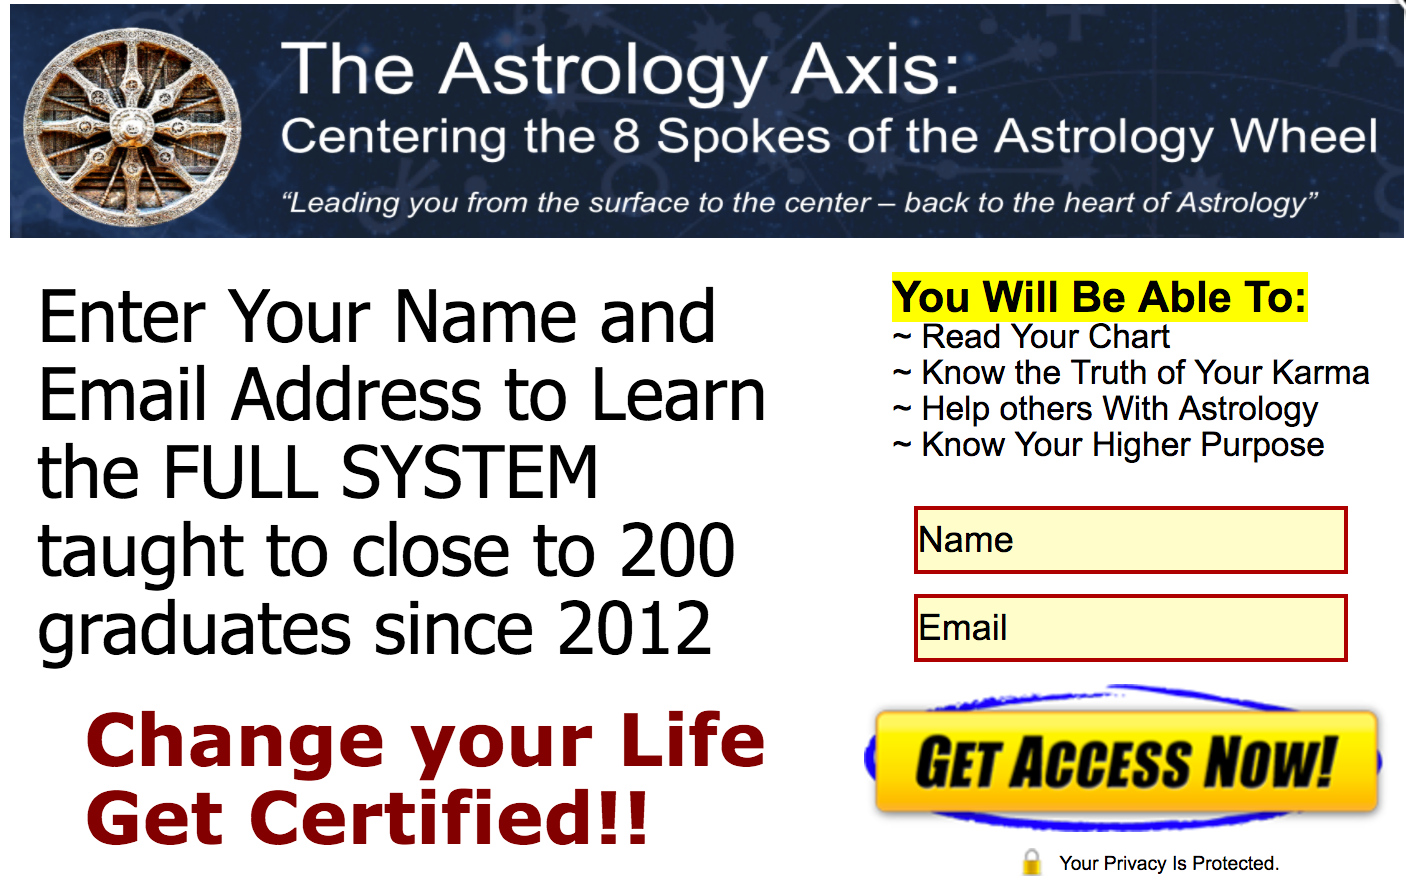 Vedic astrology the first house personal intelligence vedic vedic astrology the first house personal intelligence vedic art and science vedic astrology horoscopes charts hindu astrology nvjuhfo Images